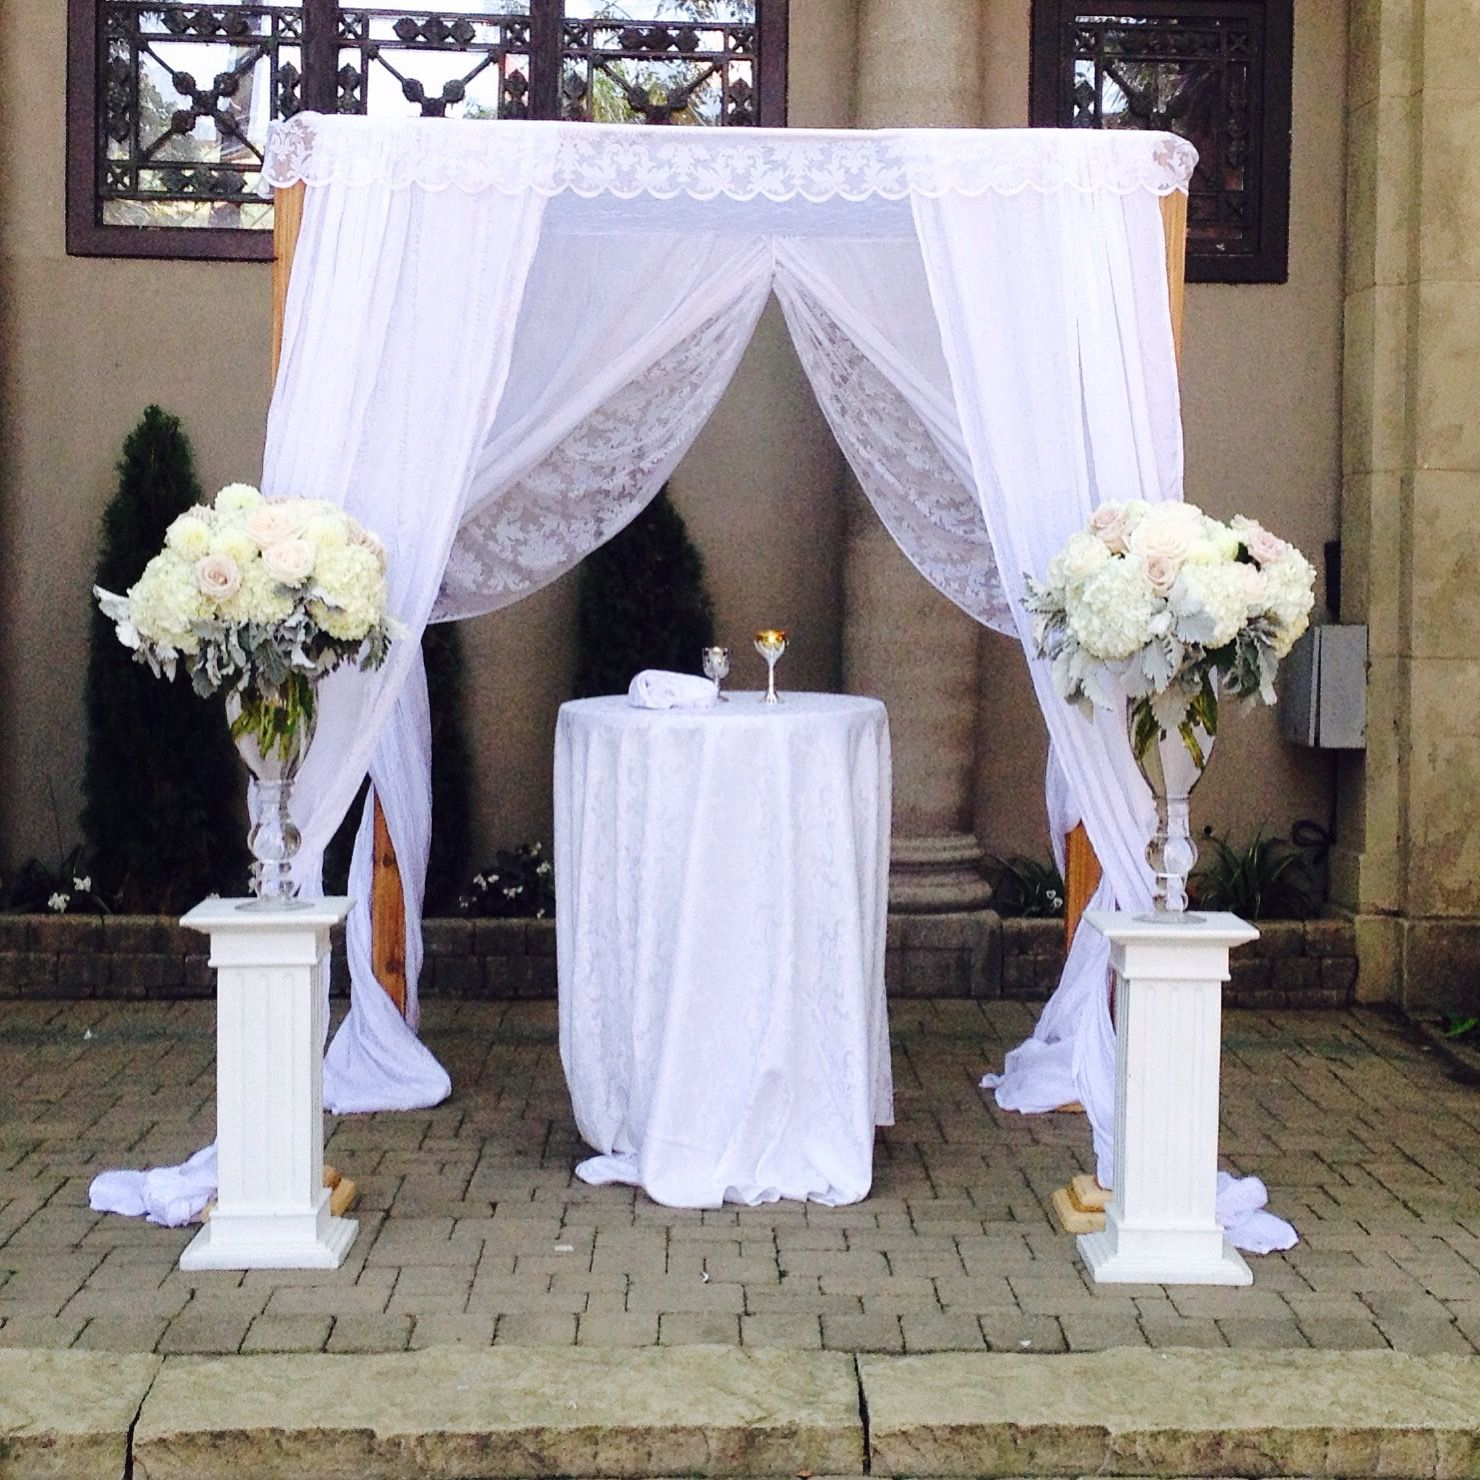 Cedar with lace and satin by chuppah.ca at The Liberty Grand Entertainment Complex